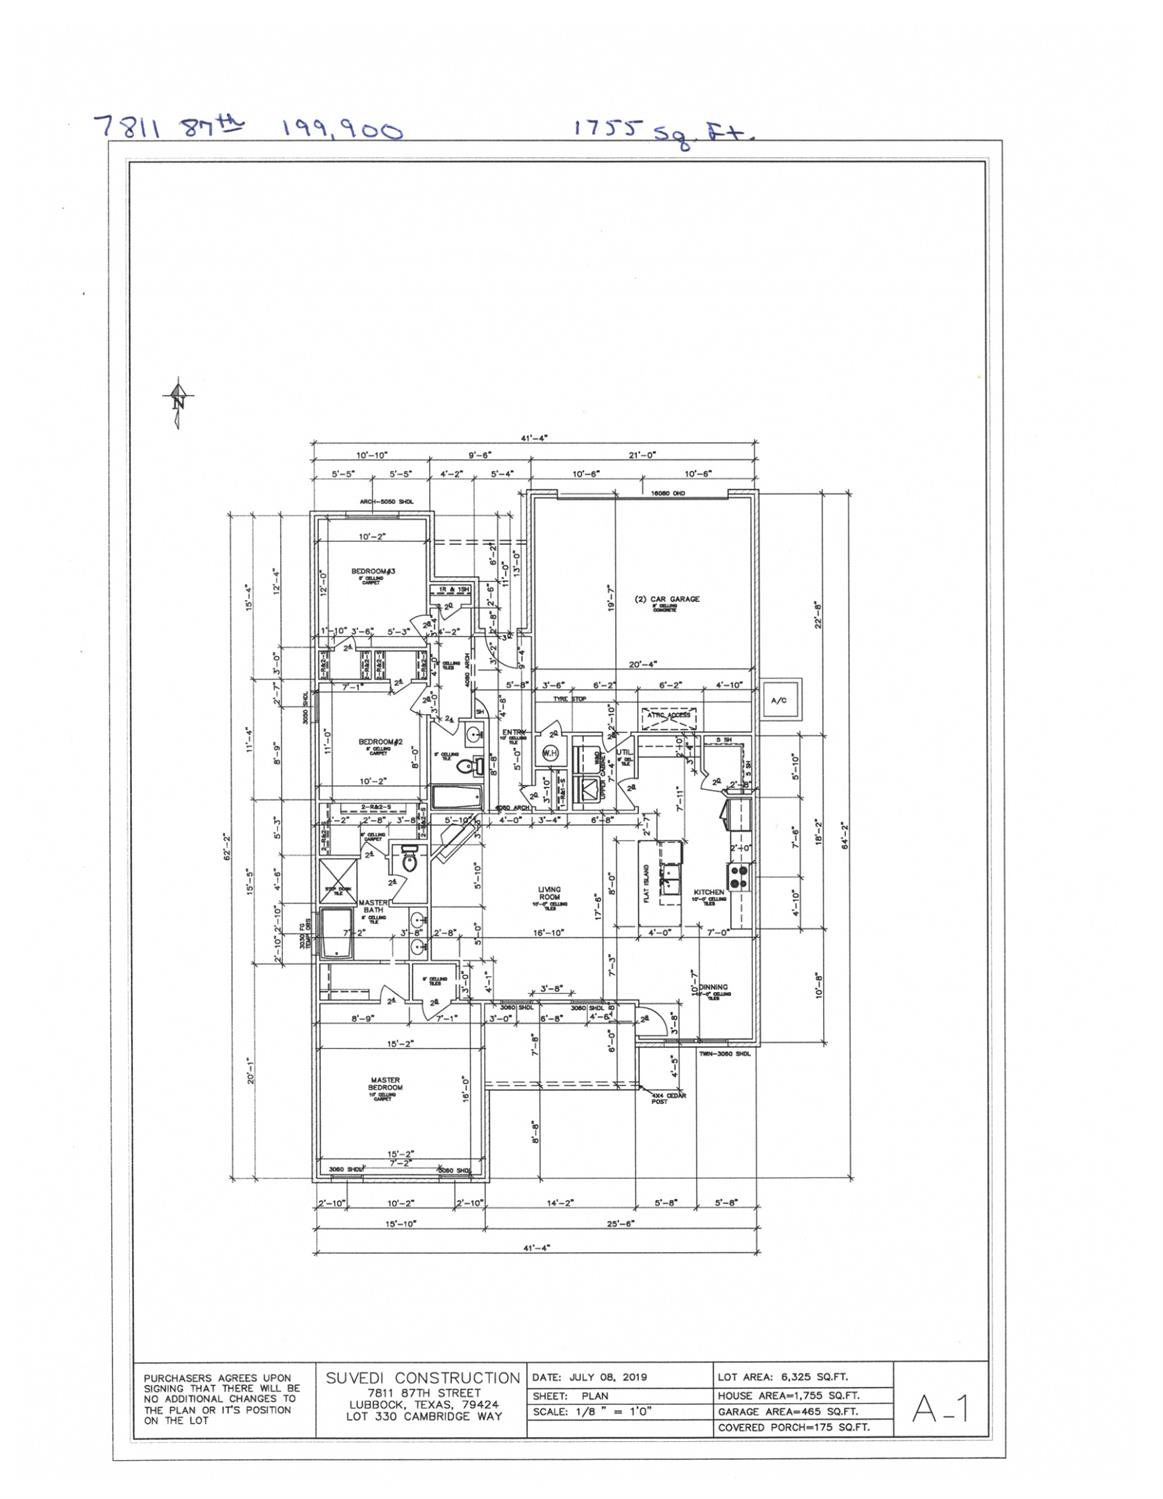 New Construction. 3/2/2, 1755 sq. ft. Estimated completion date 1/15/20.